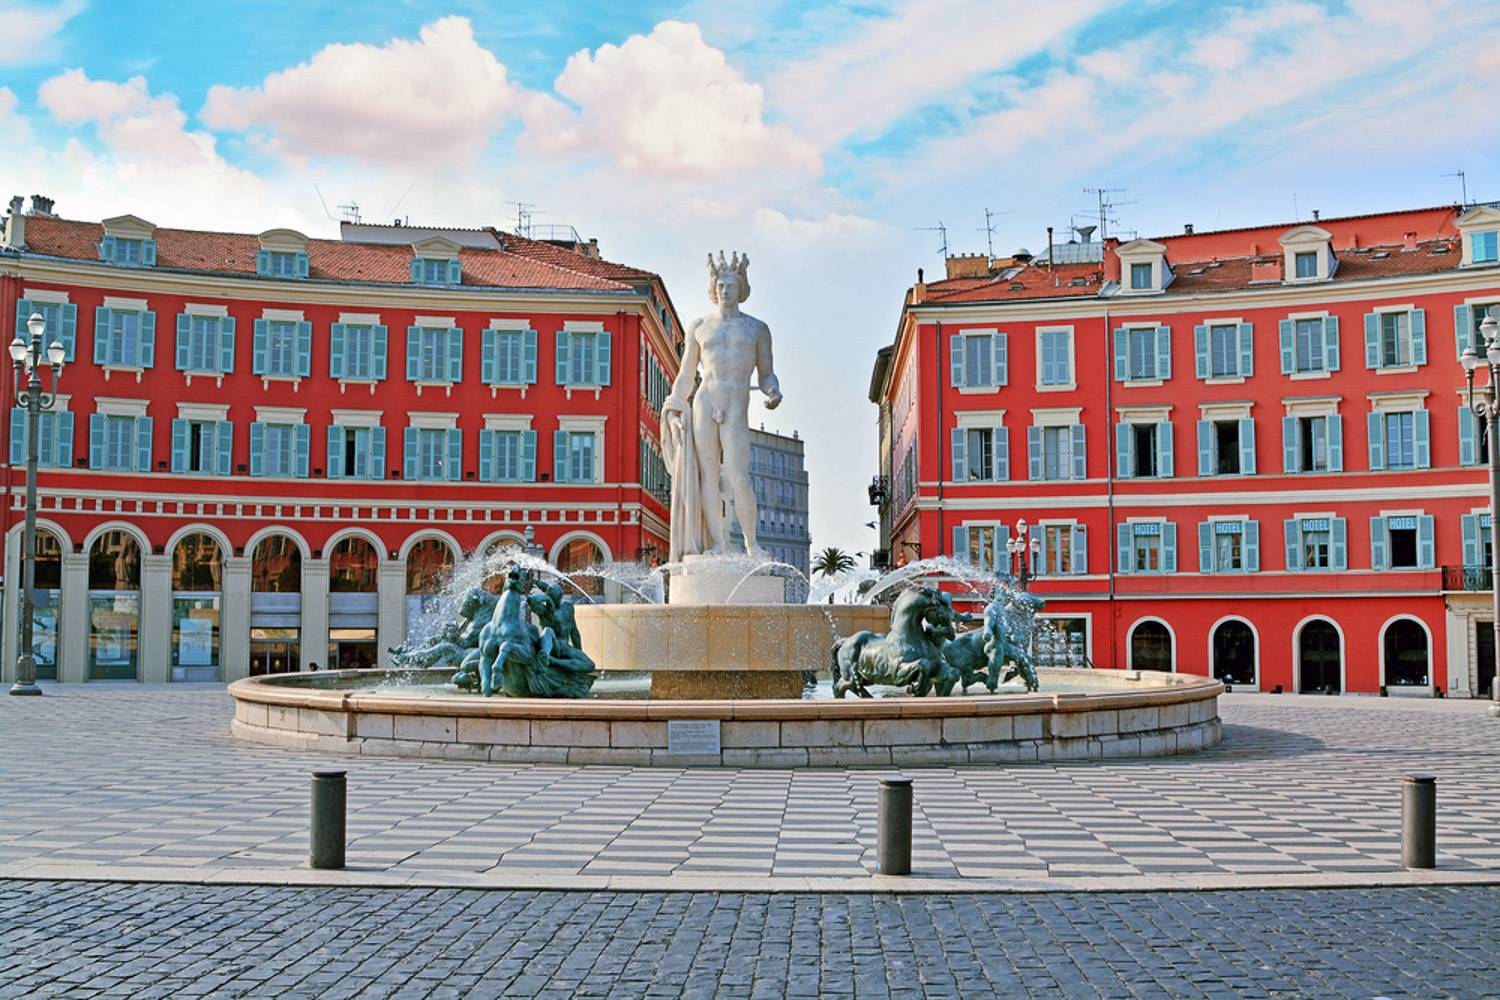 Image of Apollo statue in the Fountain of the Sun at Place Massena in Nice.